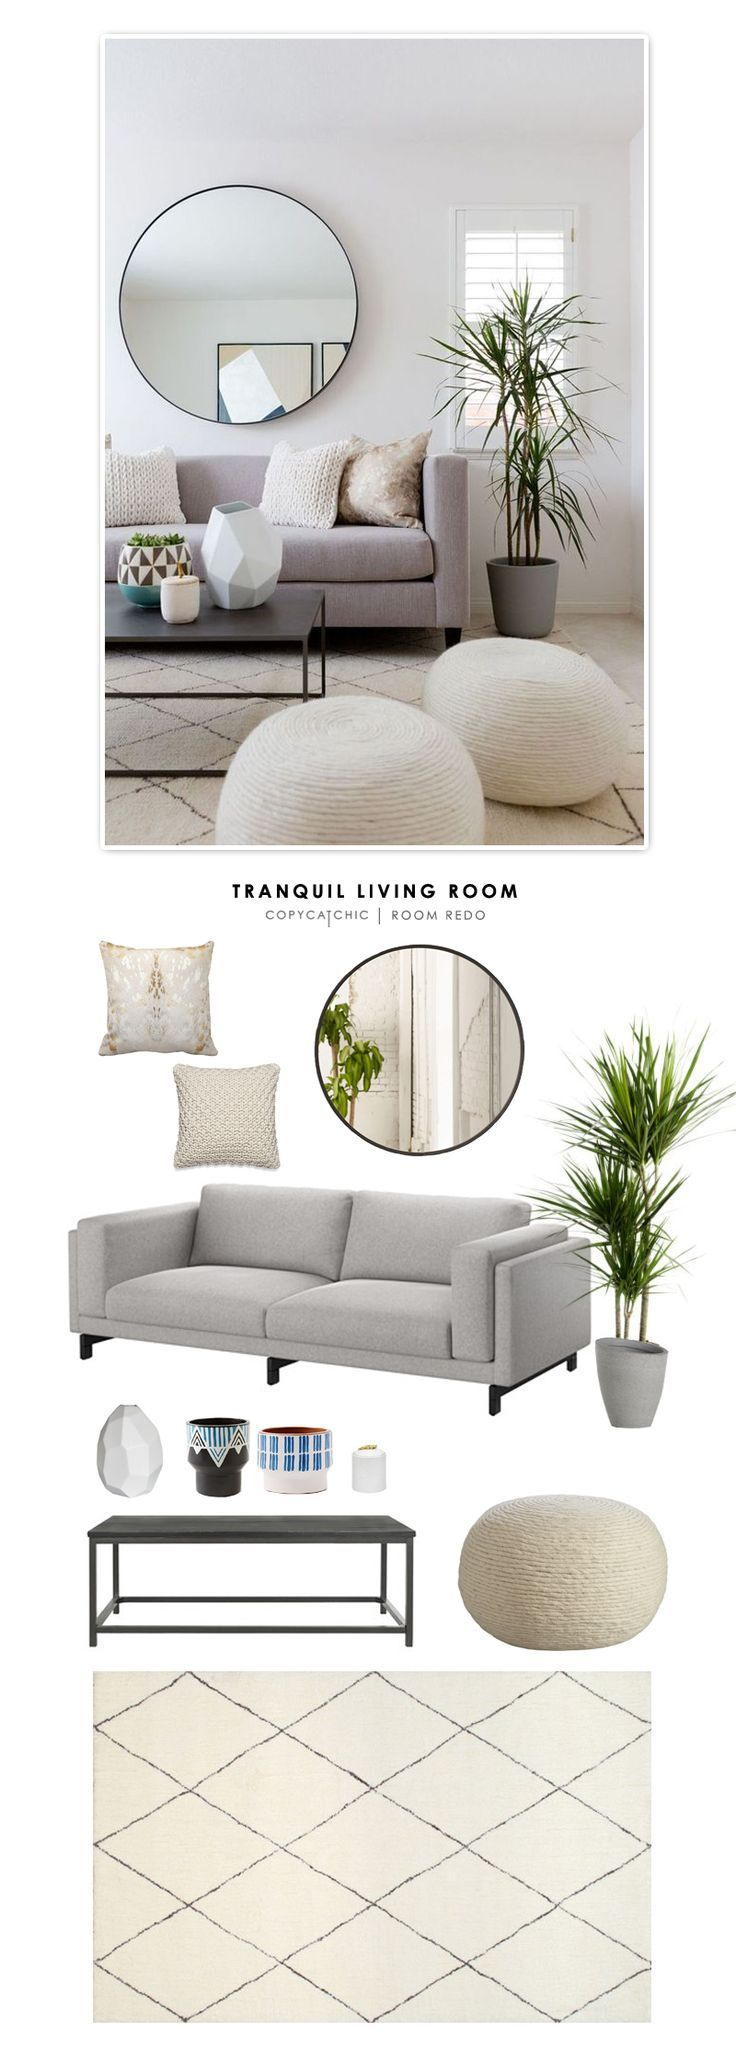 TOTAL | $2,041    SOFA $799 | RUG $262 | COFFEE TABLE $174 OR HERE $90 | WOOL POUFS $129 (EA) | MIRROR $160 | KNIT THROW PILLOW $50 (EA) | METALLIC COW HIDE PILLOW $55 | DRACAENA PLANT $10 | PATTERNED